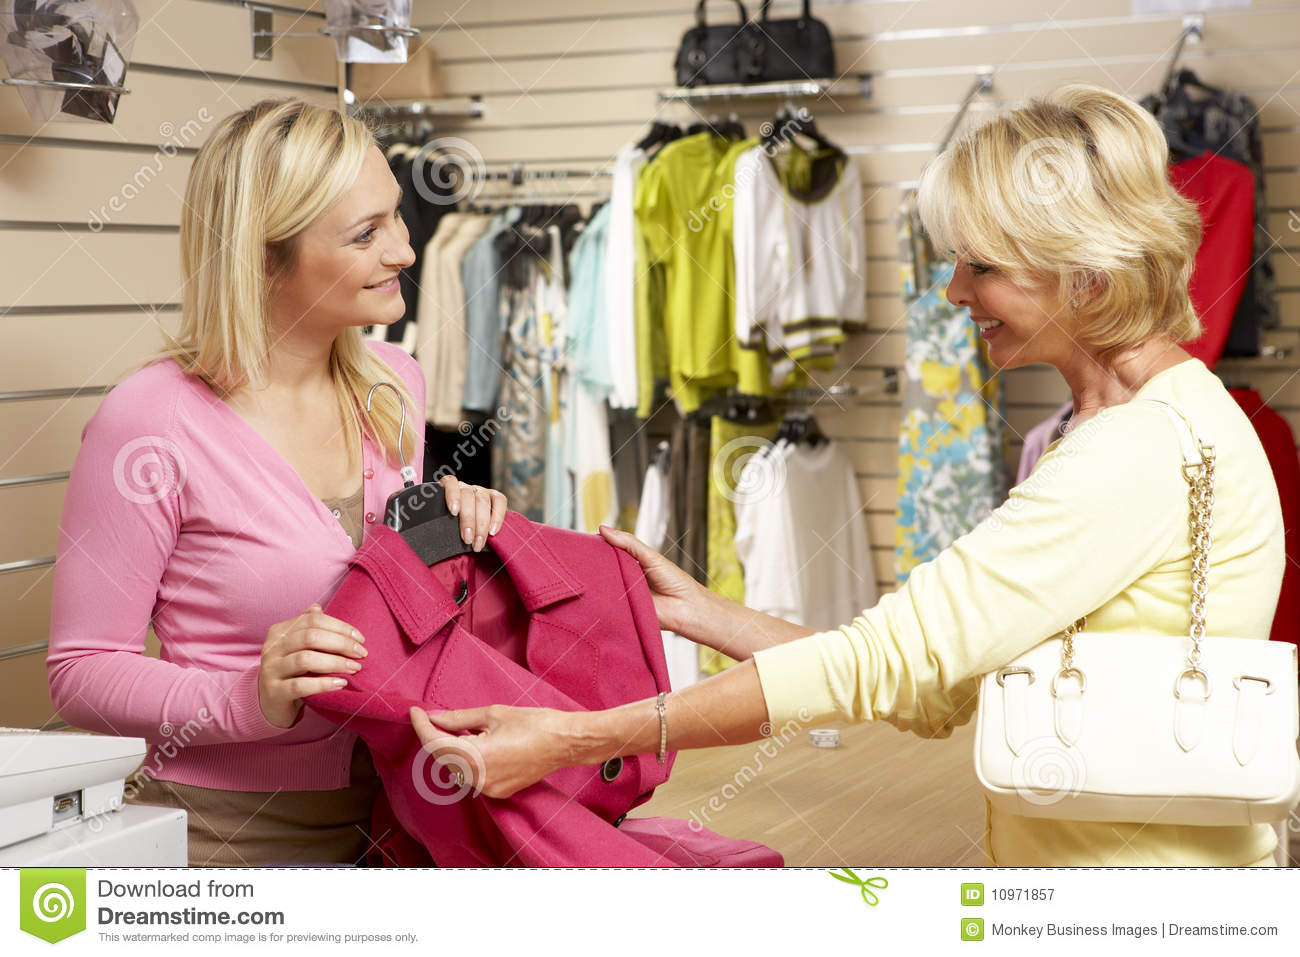 Clothing stores with sales Online clothing stores